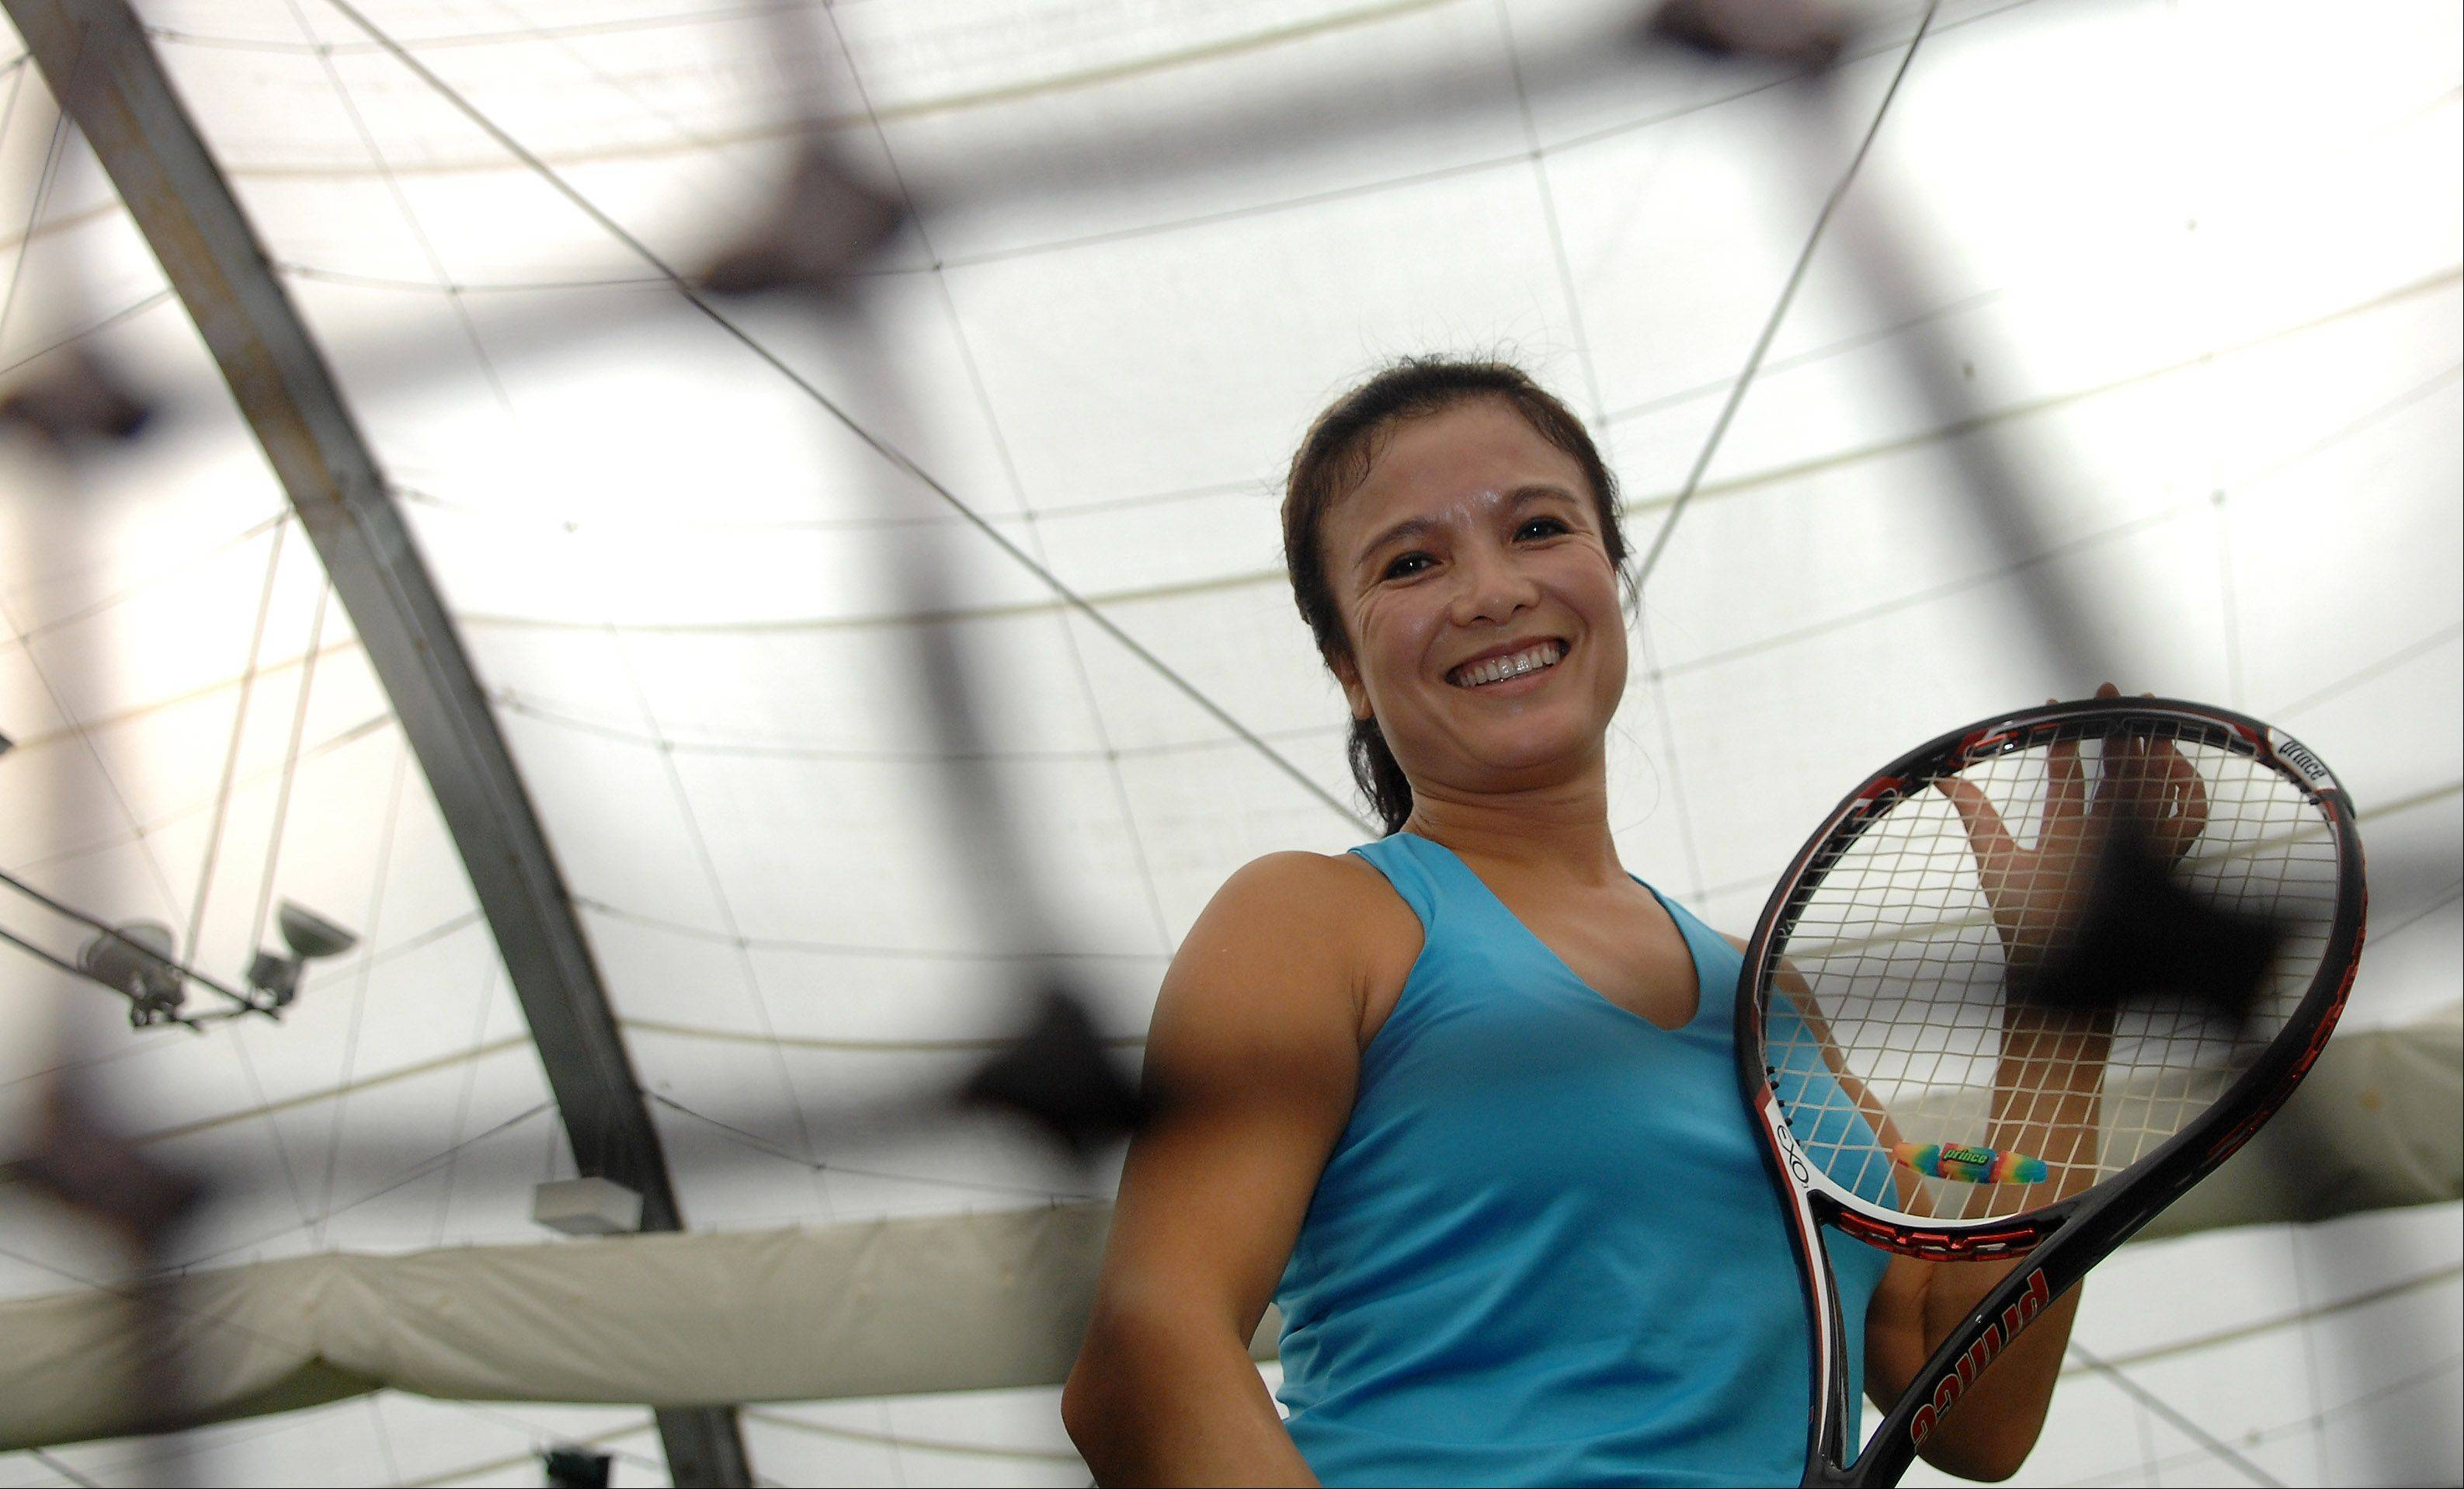 June Lynch, 45, is the number one tennis player at Elgin Community College. She picked up a tennis racket for the first time three years ago when she arrived at the community college from China.